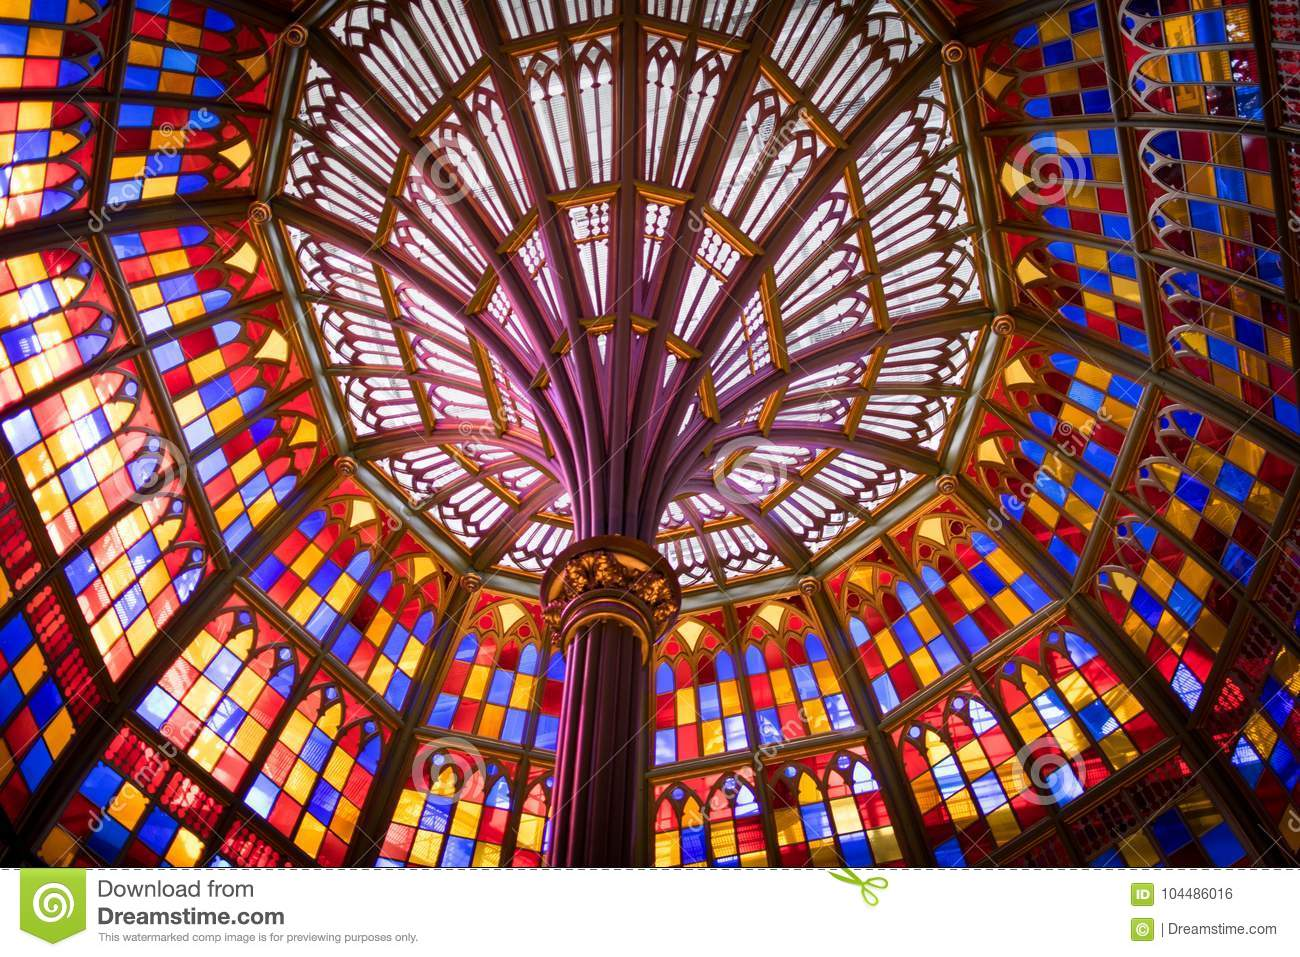 Stained glass ceiling in Louisiana Old State Capitol Building